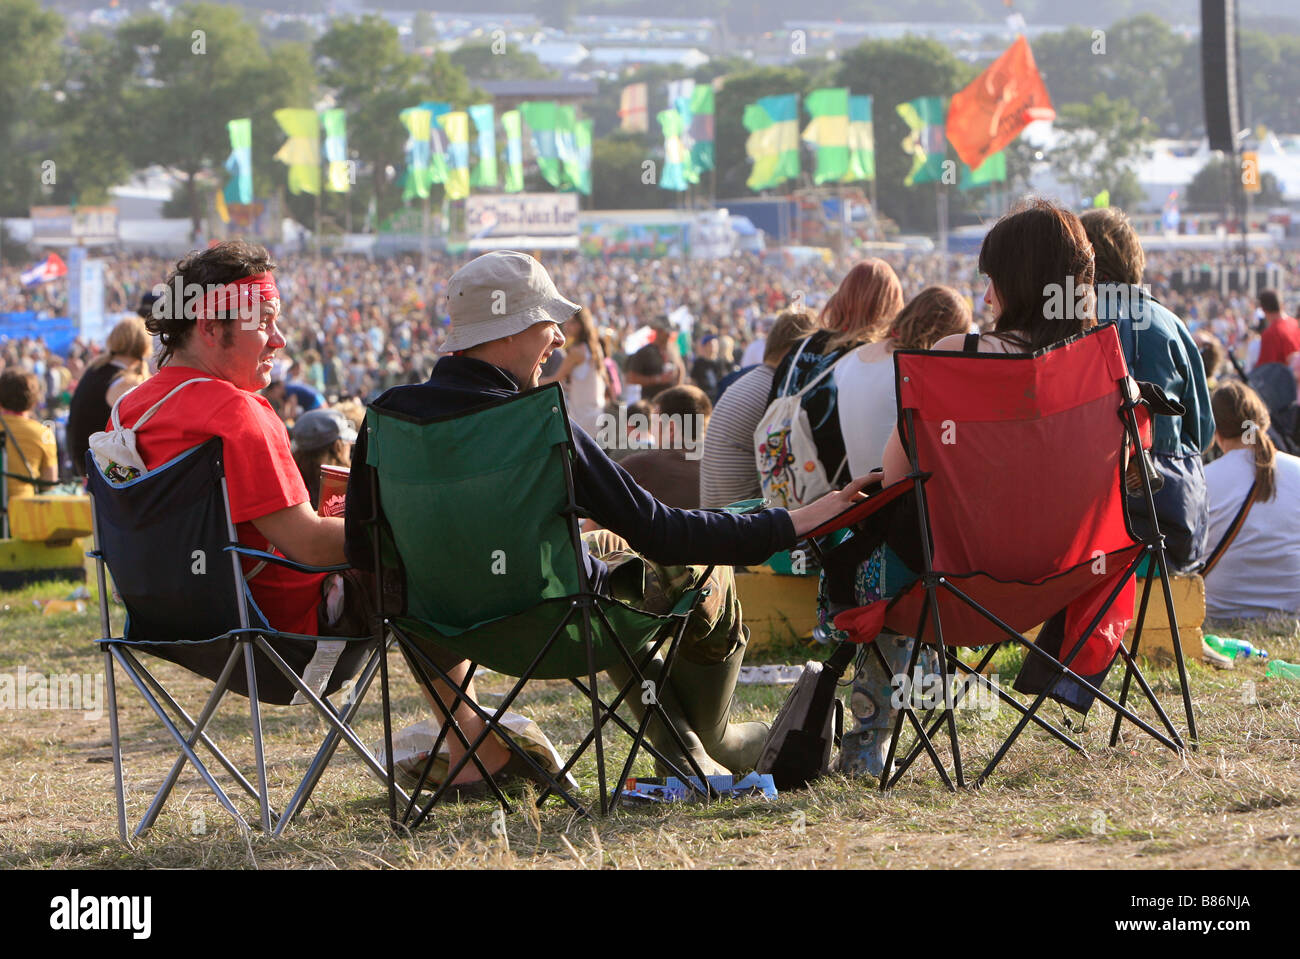 A group of friends enjoy the sunshine in front of the crowds at the Glastonbury Festival in Pilton, Somerset in - Stock Image